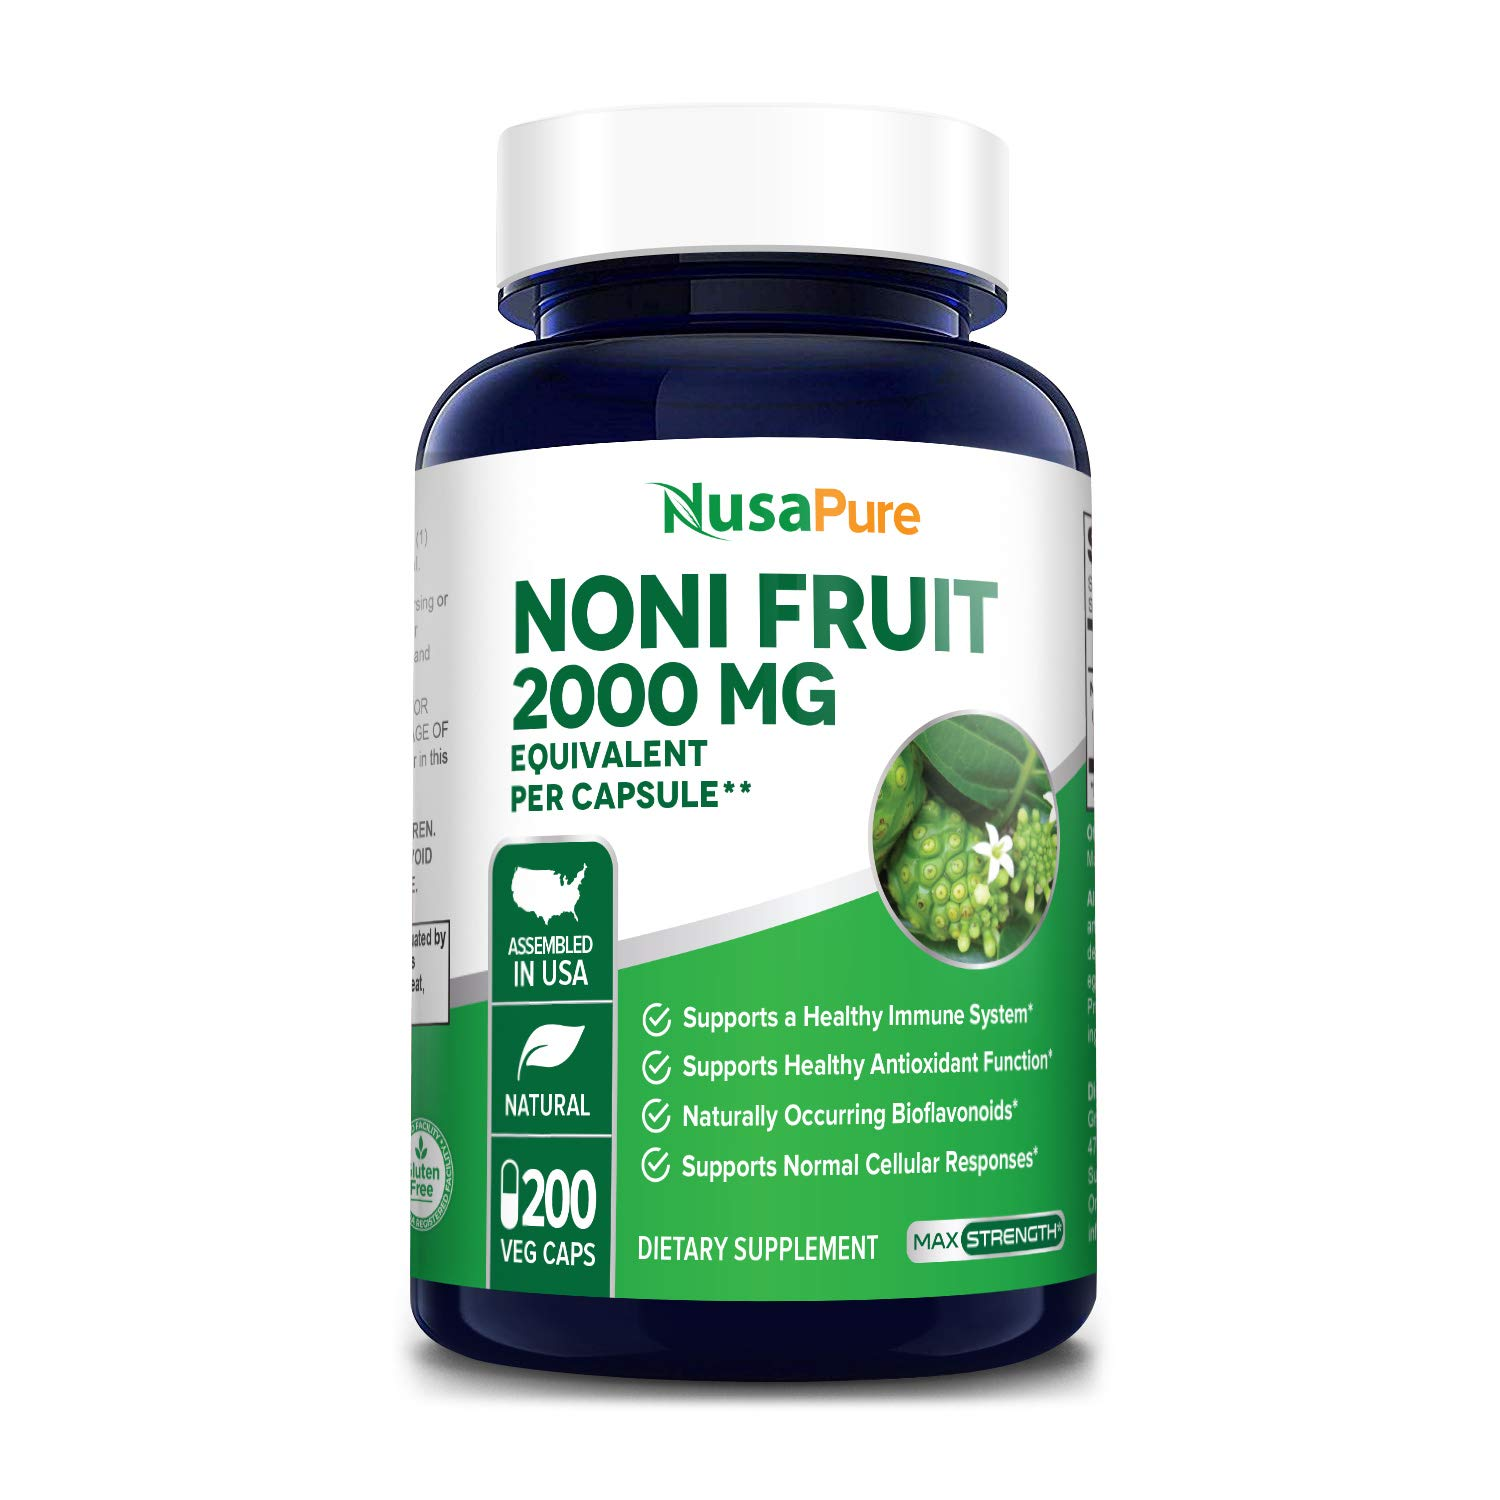 Noni Fruit 2000mg 200 Vegetarian caps (Extract 4:1, Non-GMO & Gluten-Free) Powerful antioxidant, Supports Healthy Immune System* Healthy Antioxidant Function*